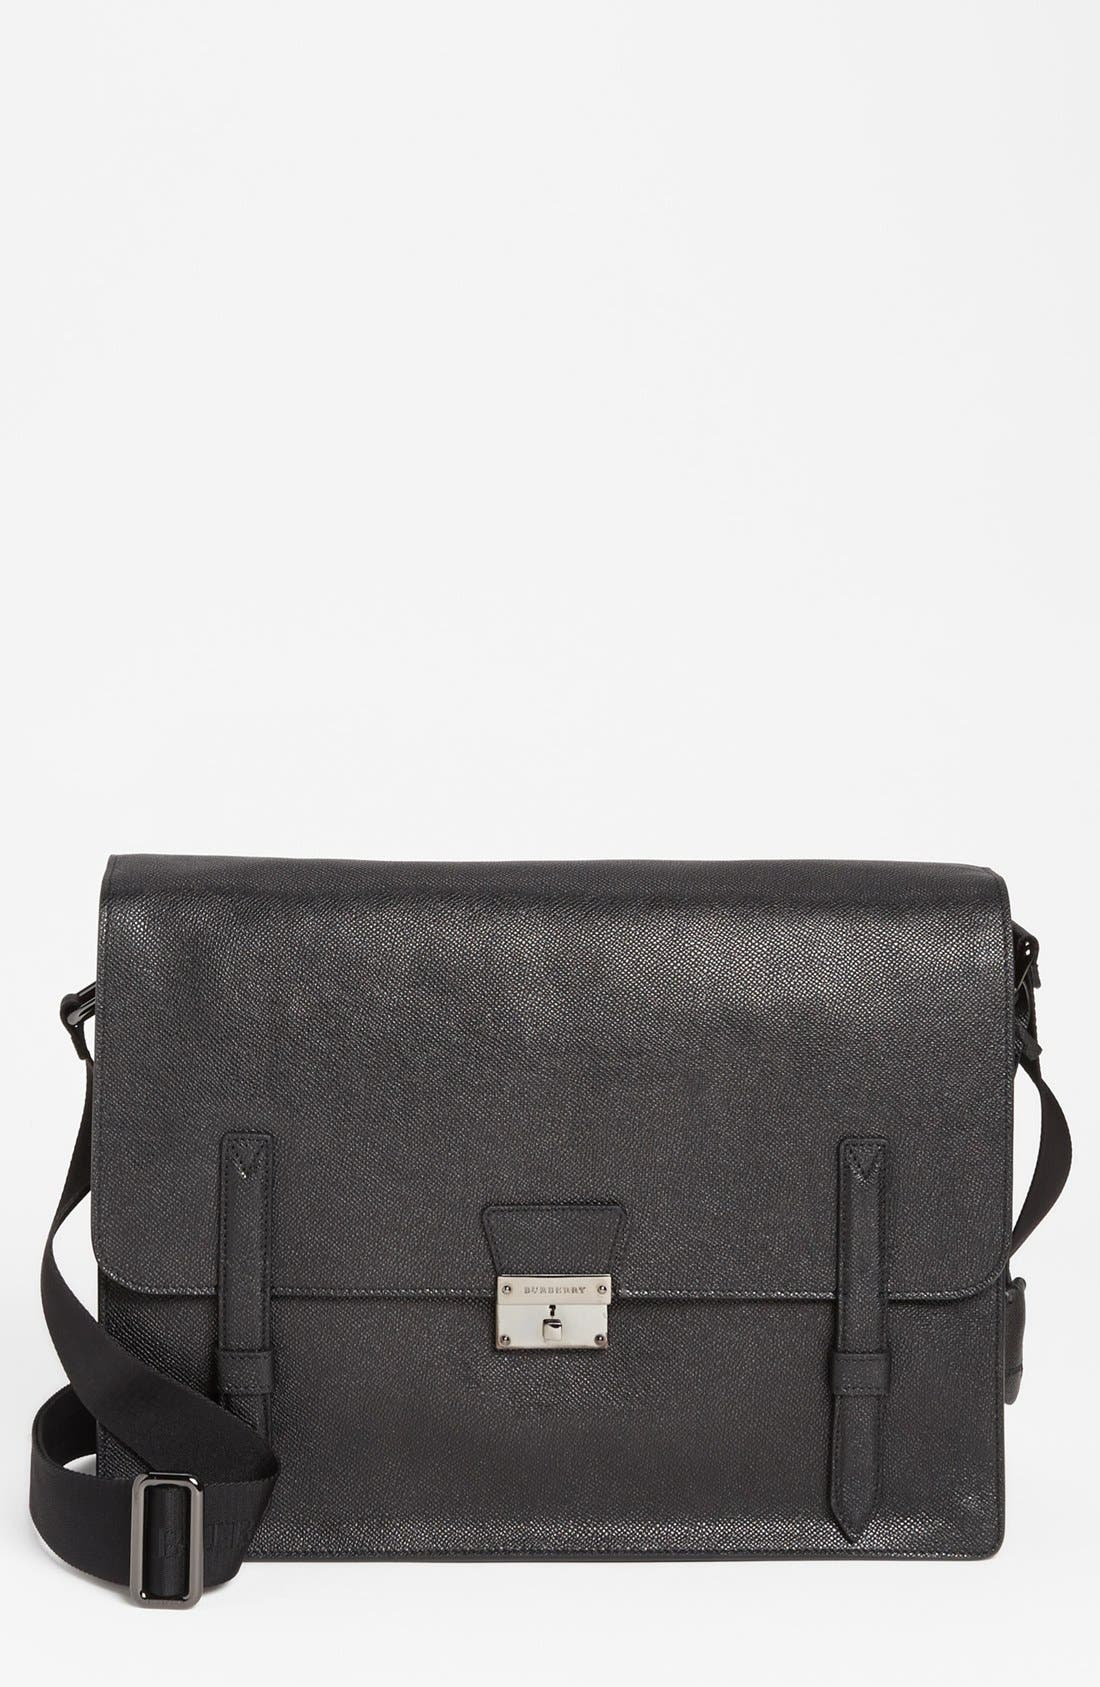 Main Image - Burberry 'Rivendale' Leather Messenger Bag